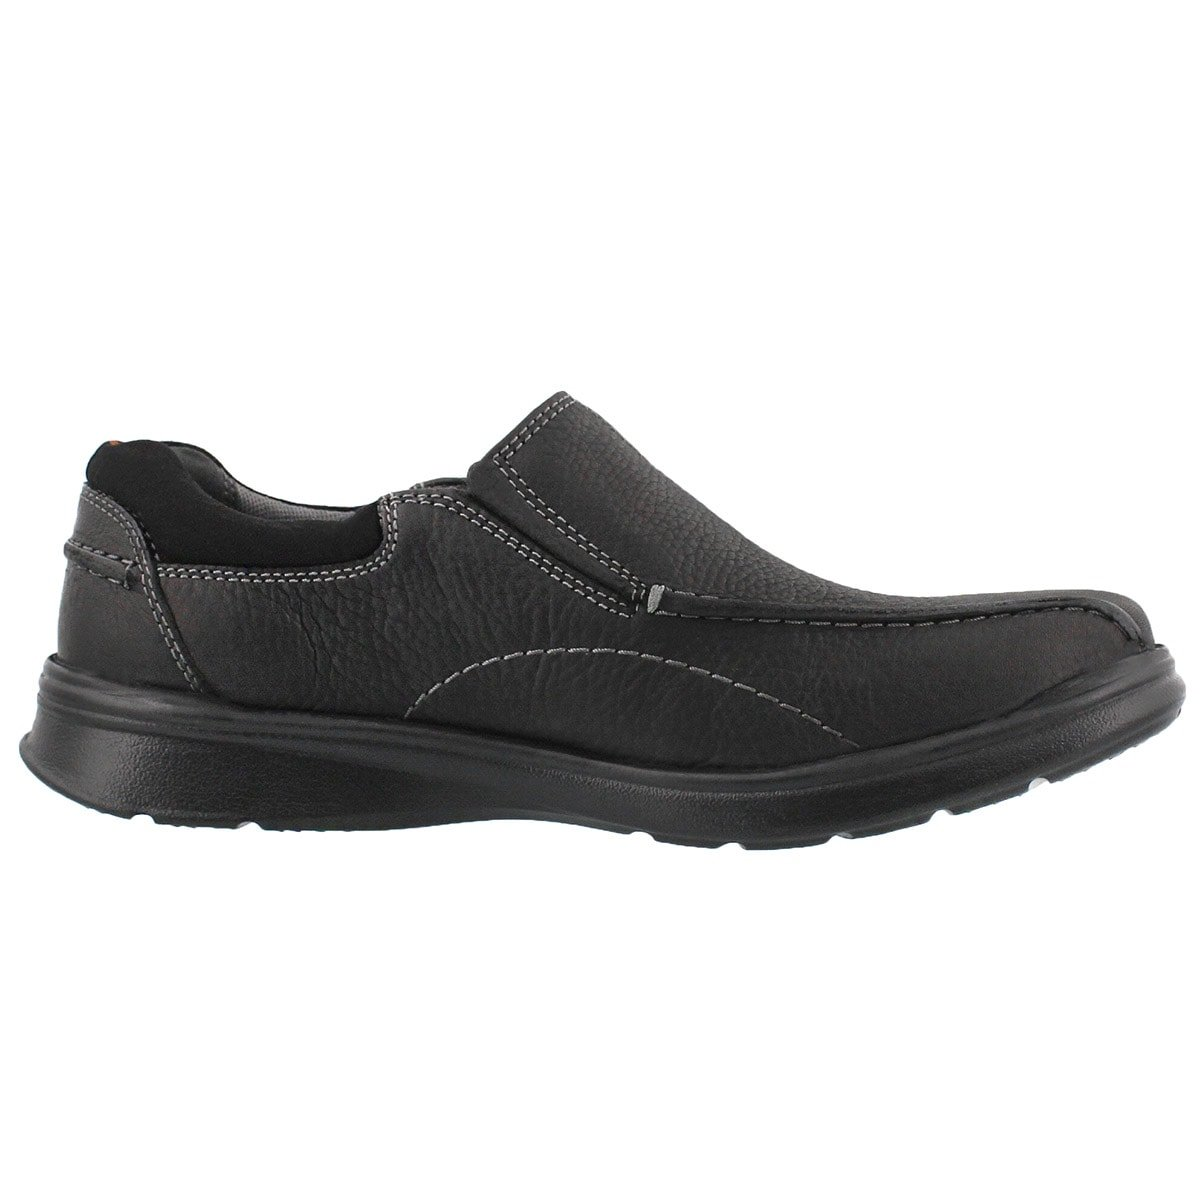 CLARKS Men's Cotrell Step Slip On Casual Loafer - Medium Black 10 W US by CLARKS (Image #4)